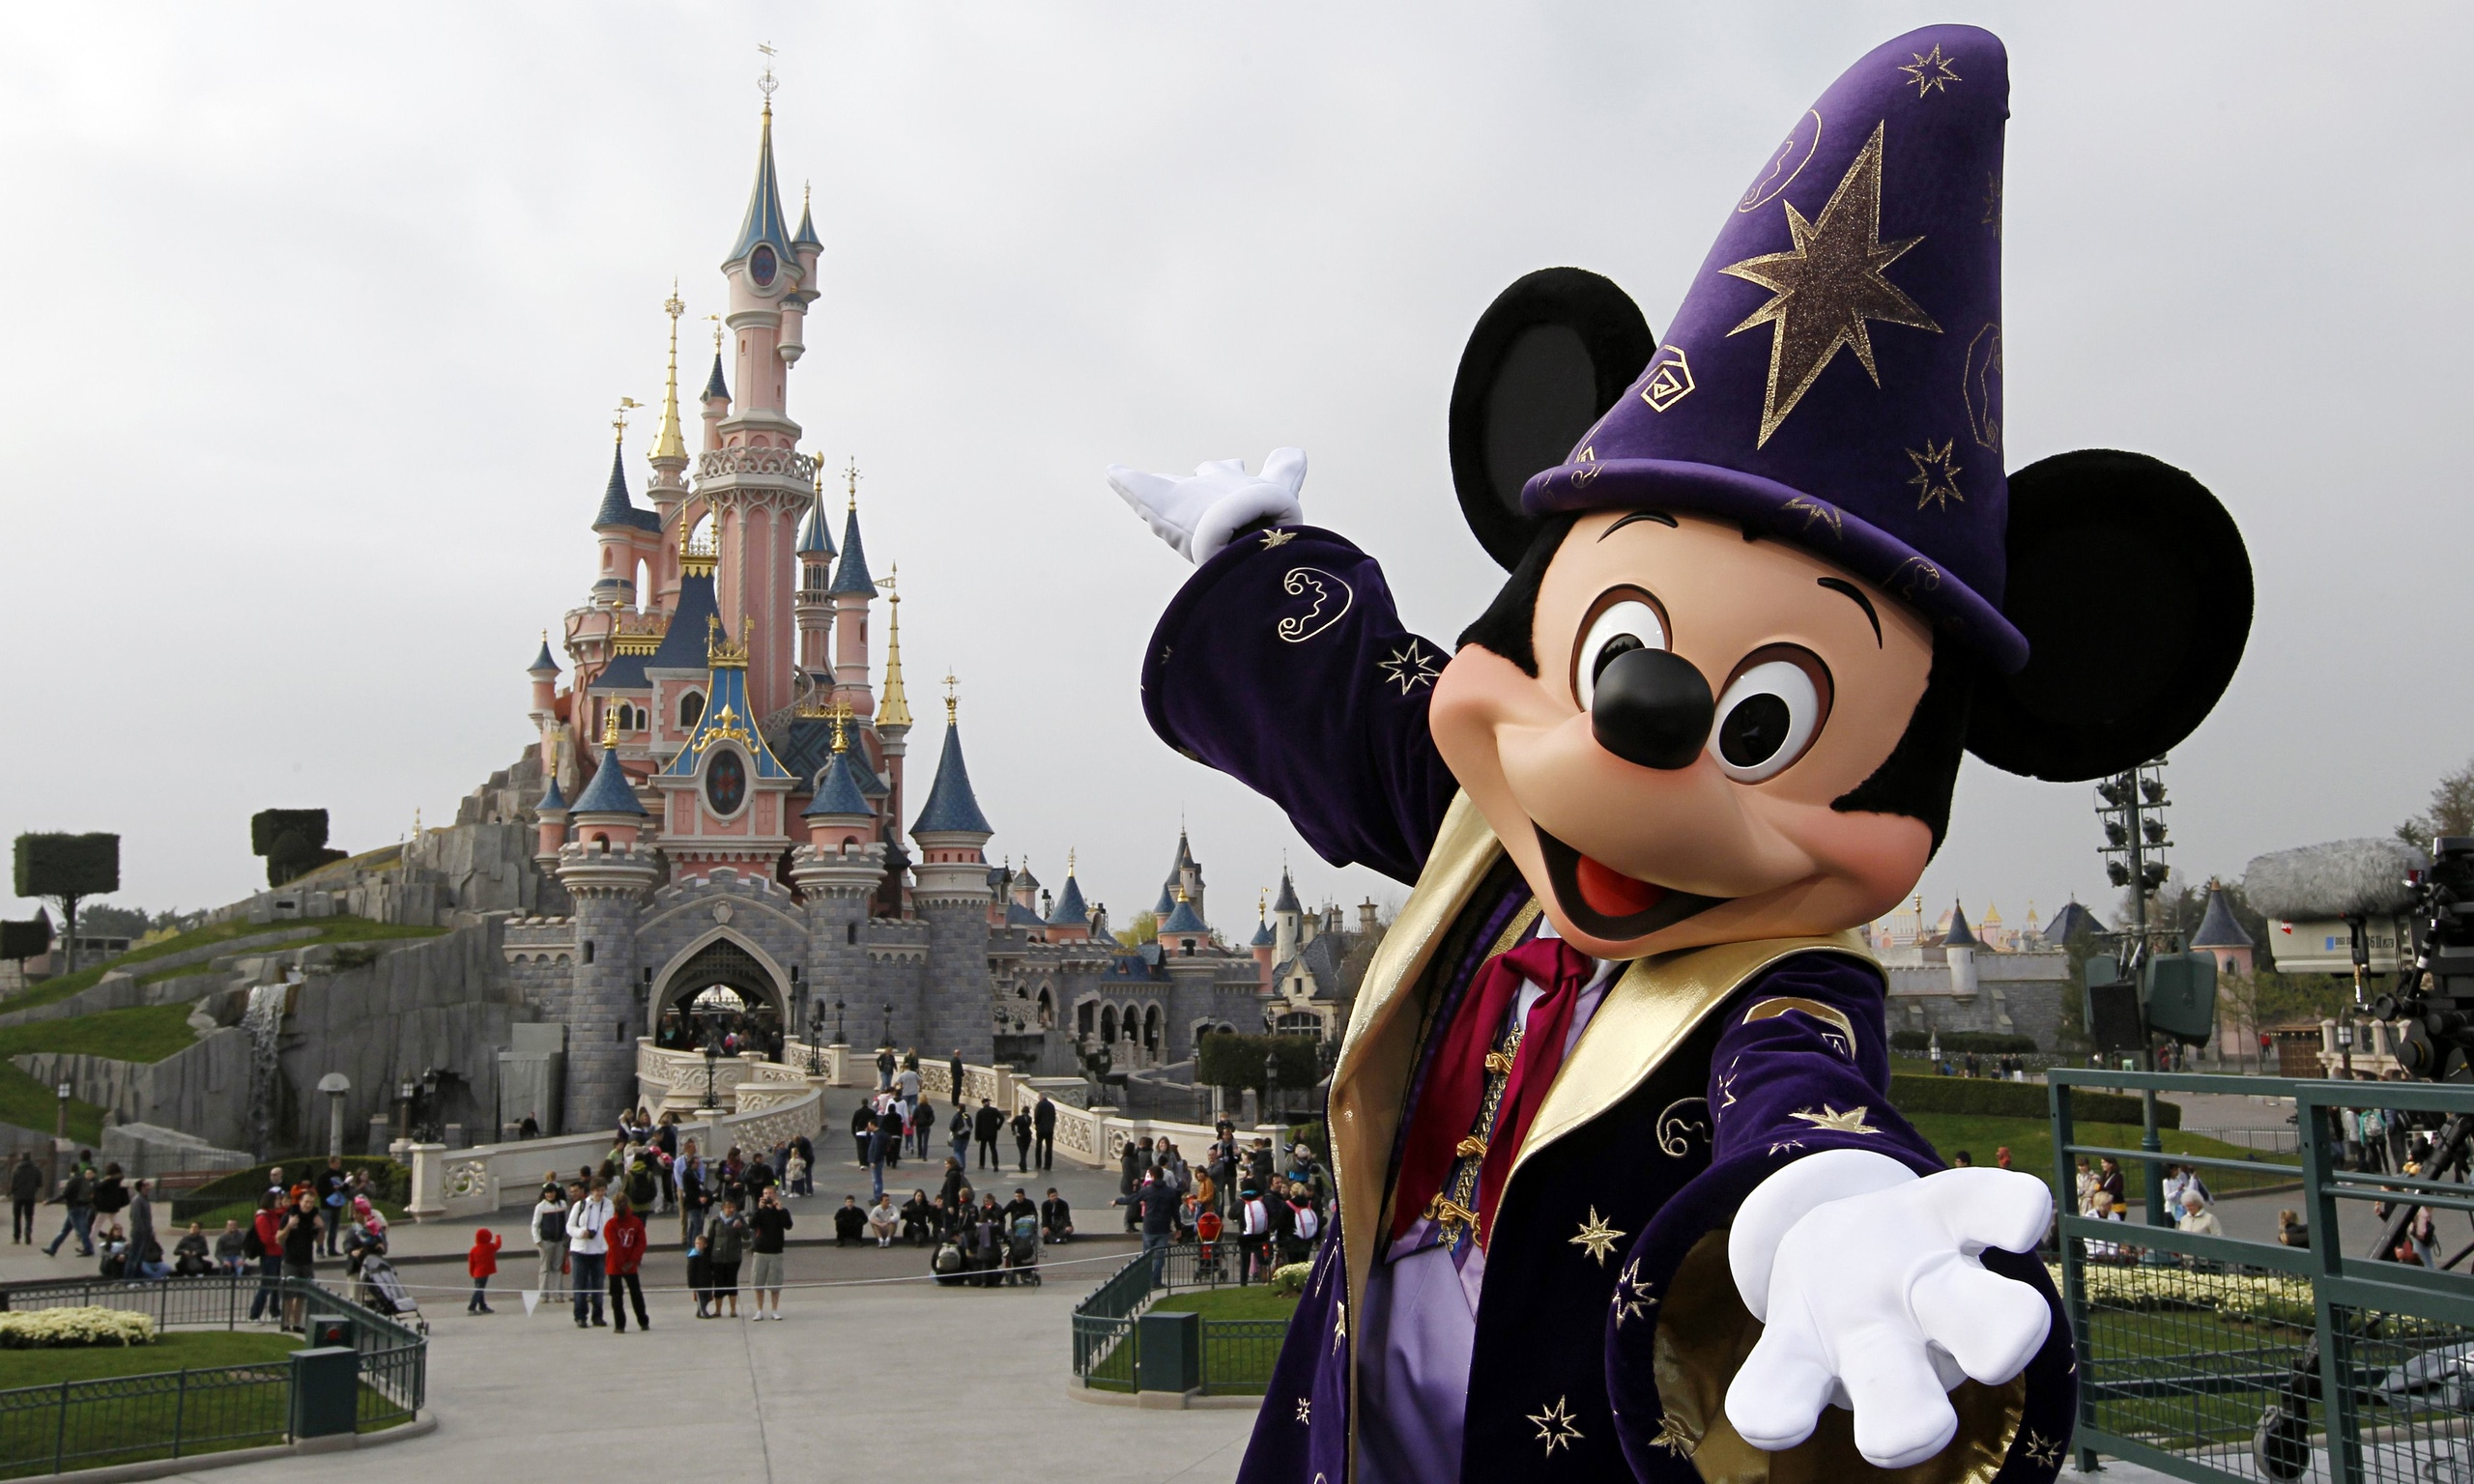 Awesome Soggiorno Eurodisney Offerte Gallery - Amazing Design Ideas ...